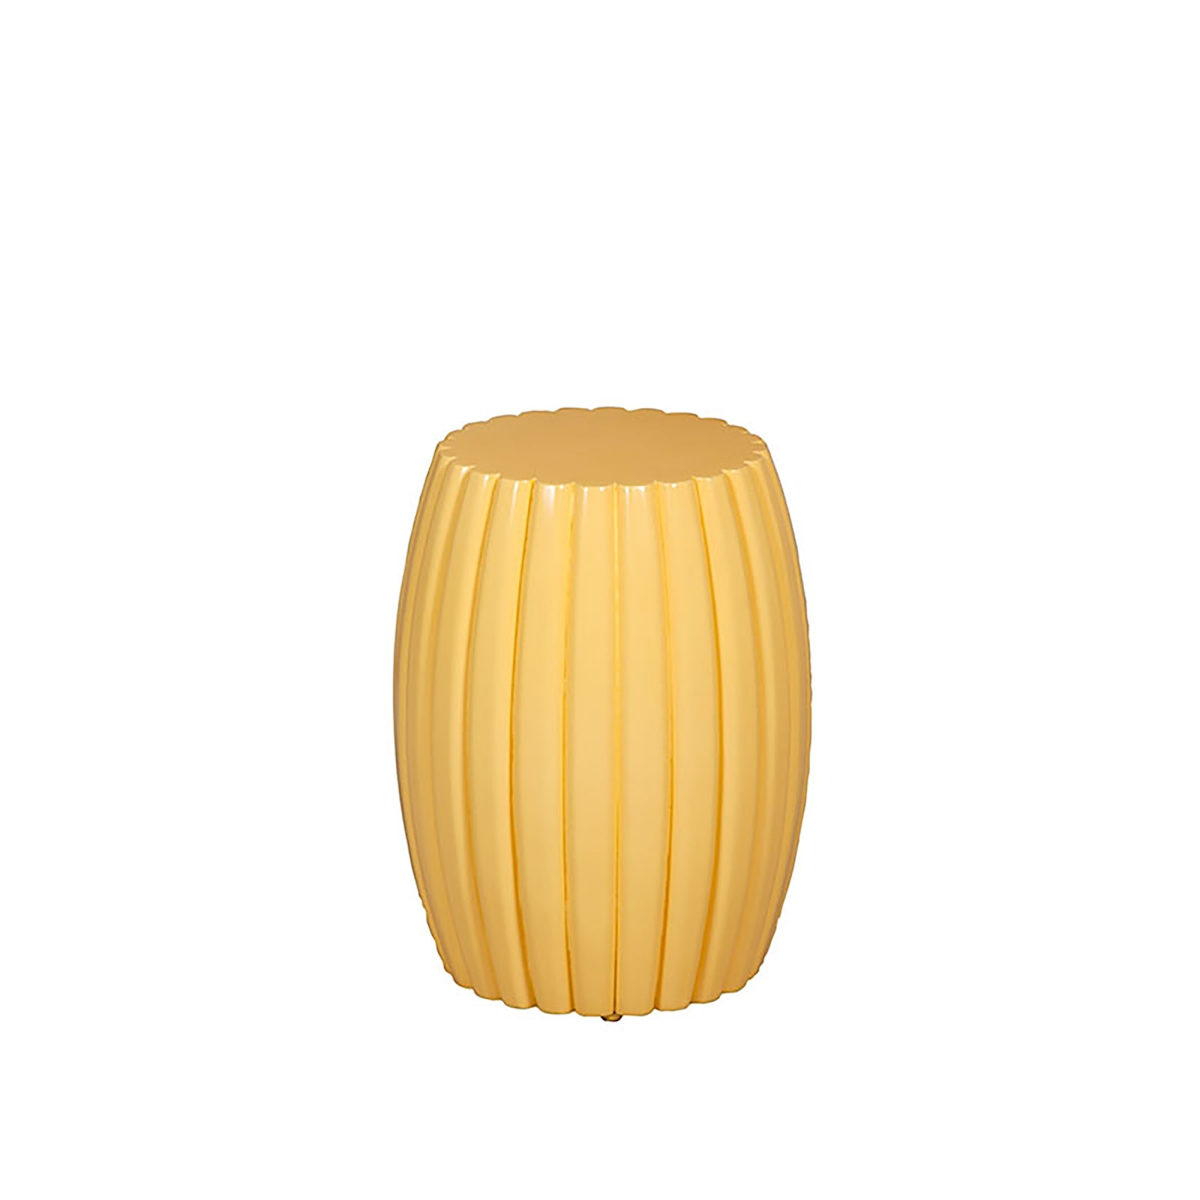 Grooved Drum Stool/Table A24713560-NY | ELK Home